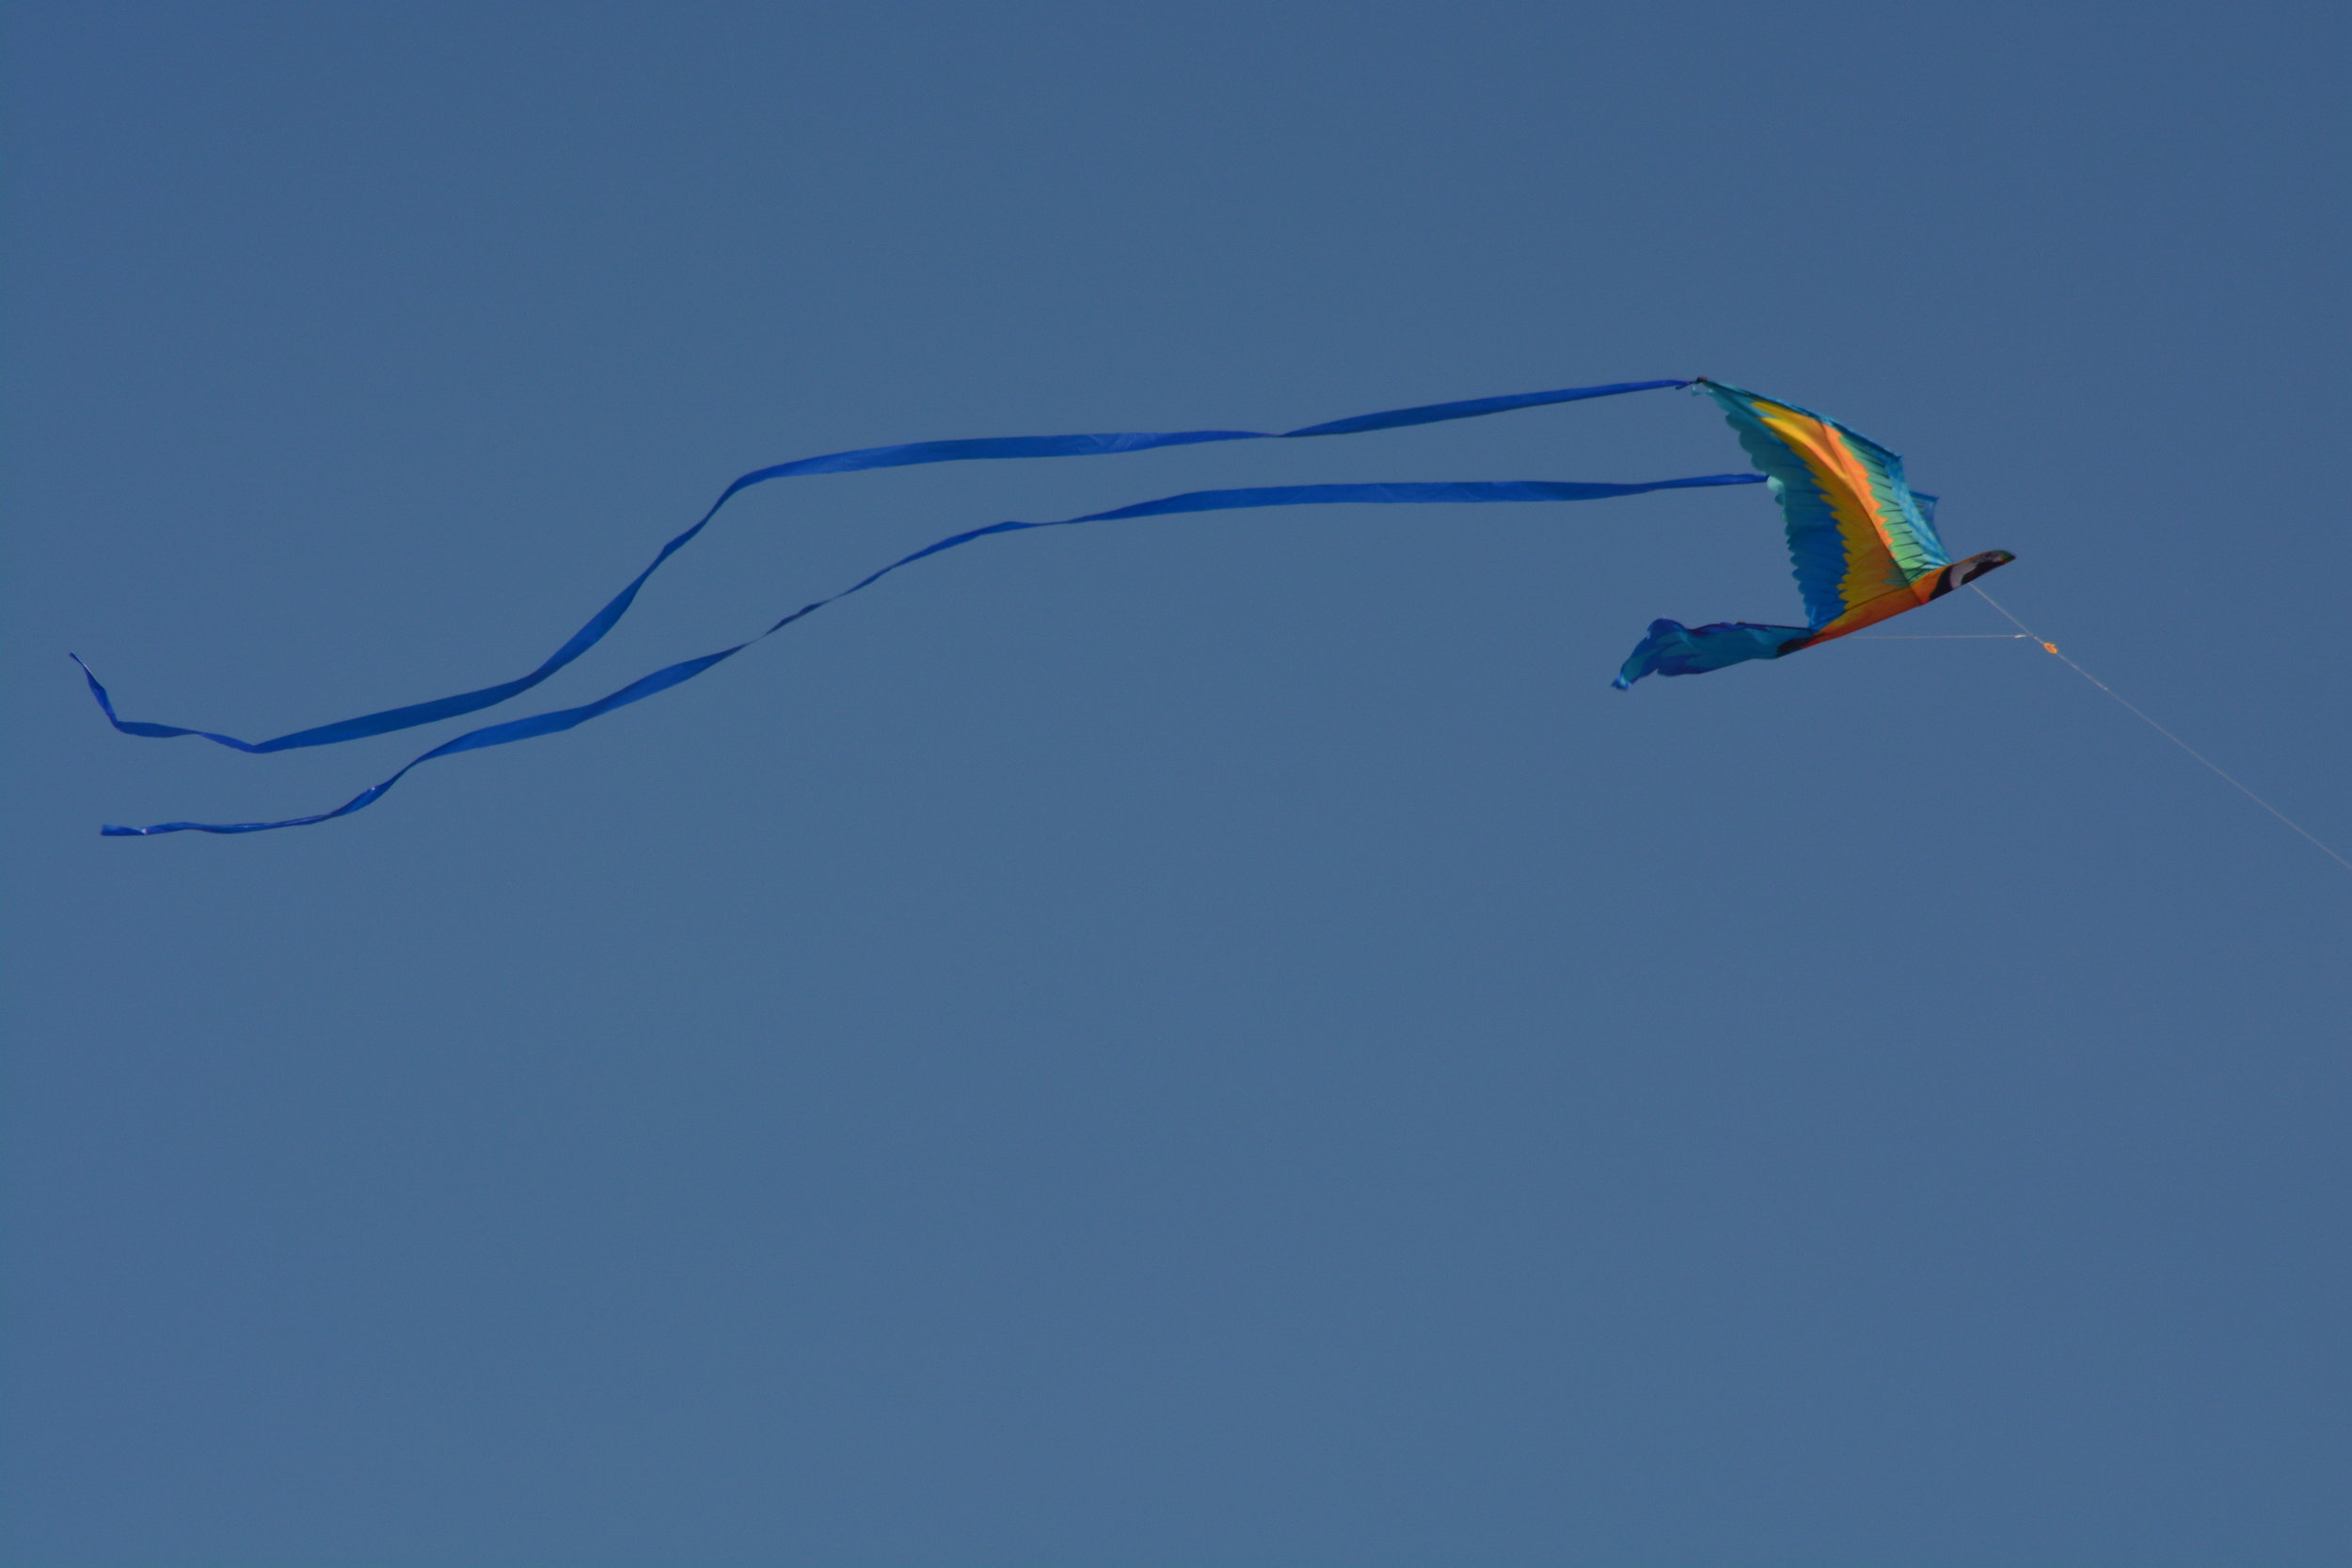 Boardwalk Kite